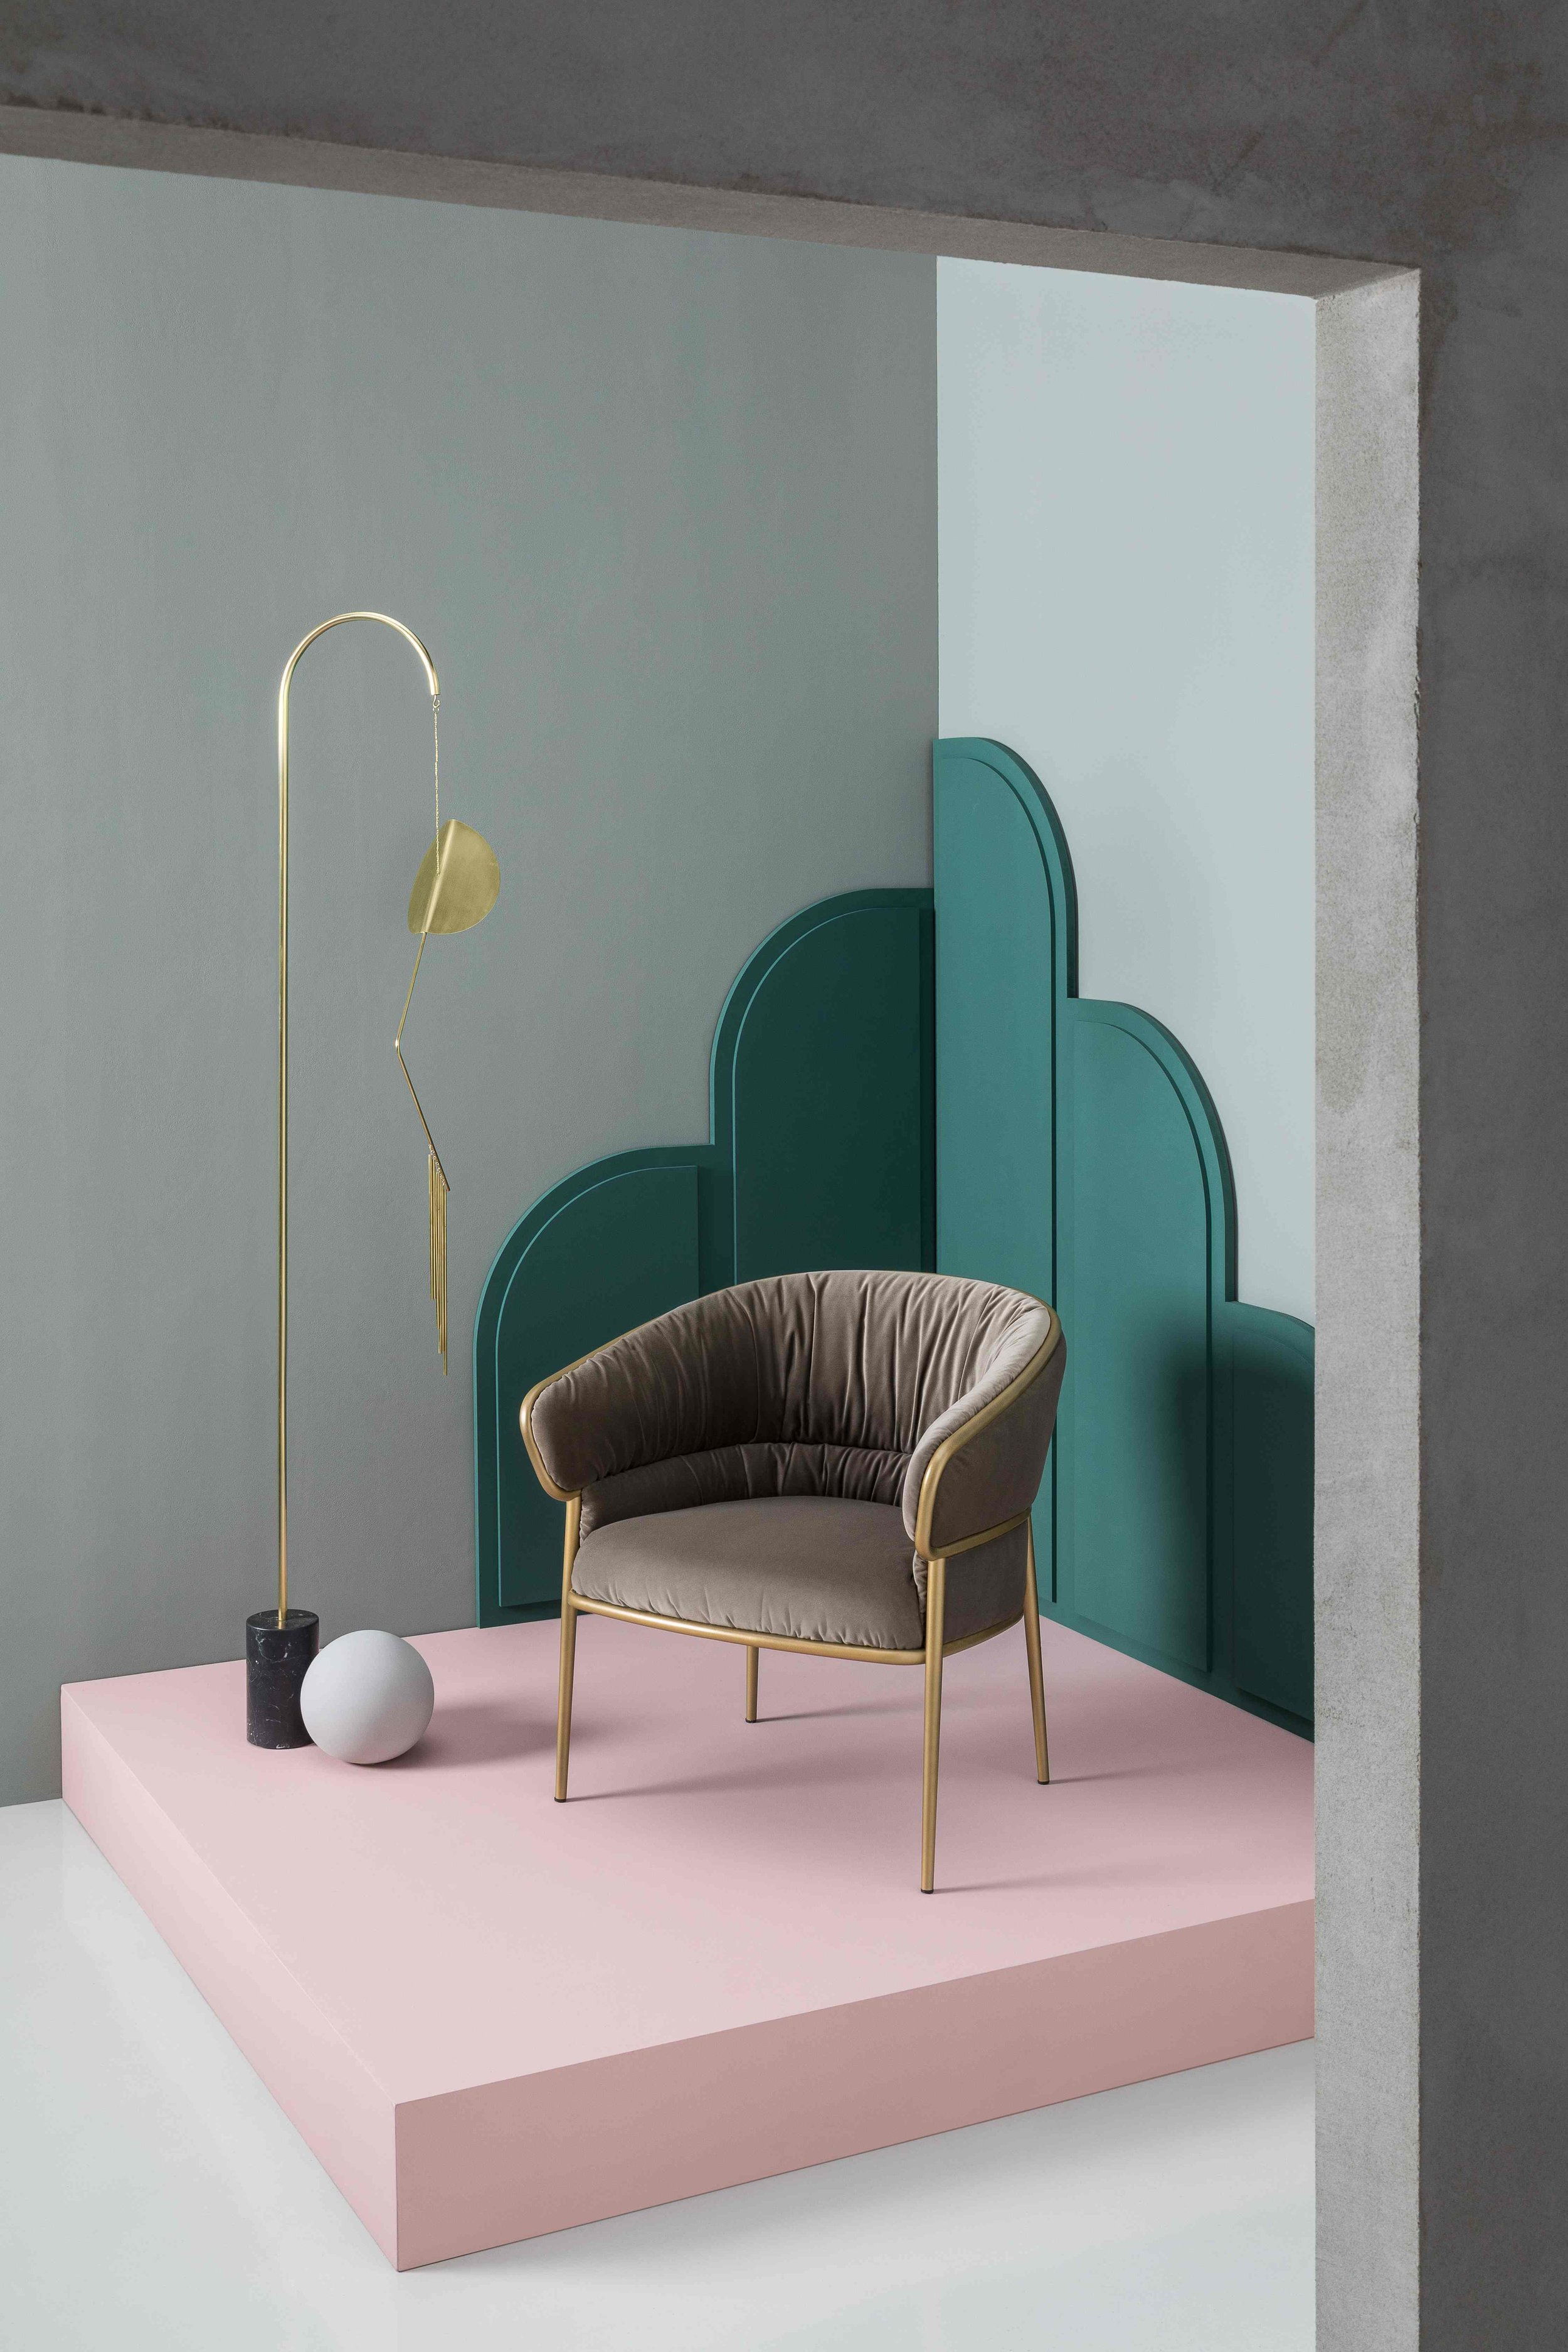 The Shu-Ying armchair includes intricate upholstery details that balance the softness of the seat and the form of the shell.